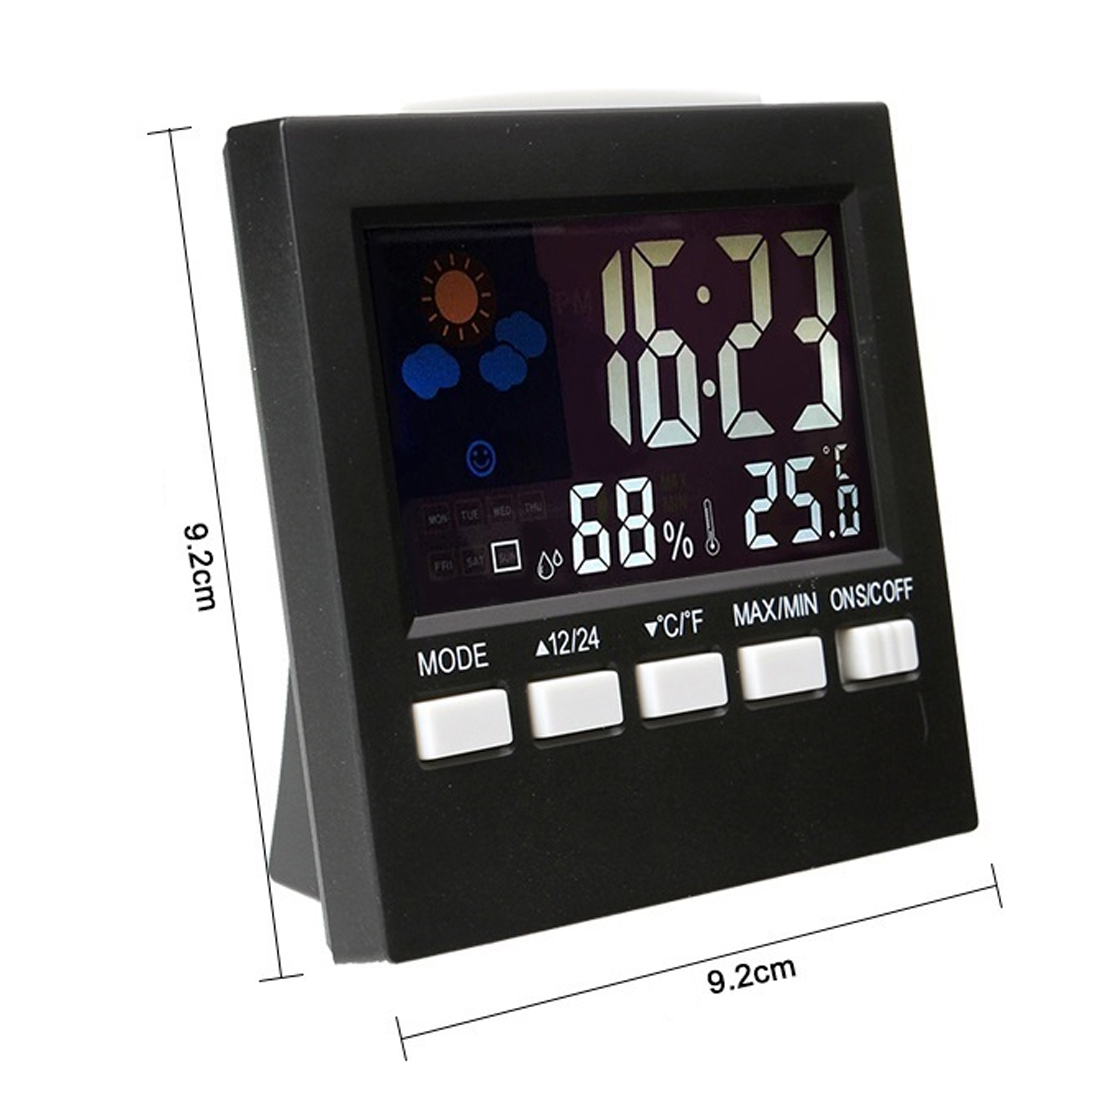 Colorful LCD Termometer Clock Alarm Snooze Function Calendar Weather Forecast Display Digital Thermometer Hygrometer